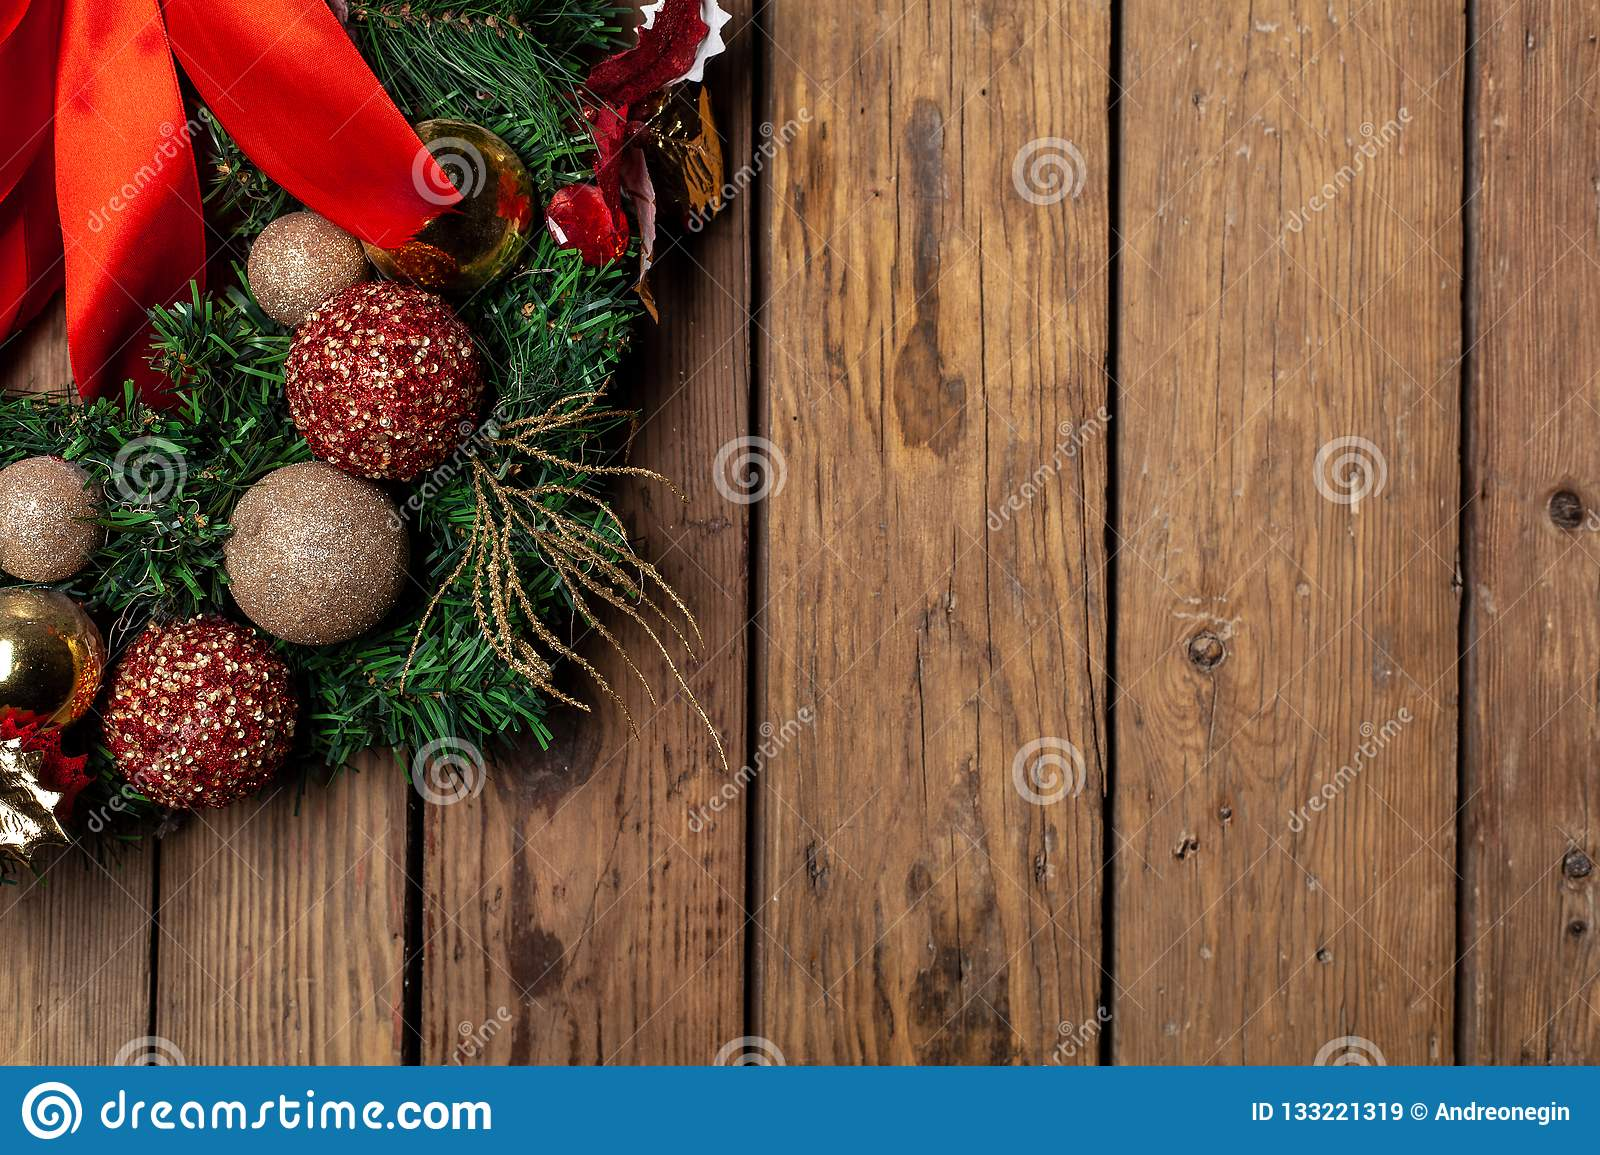 Advent Christmas Wreath On Wooden Door Or Wall Decoration Stock